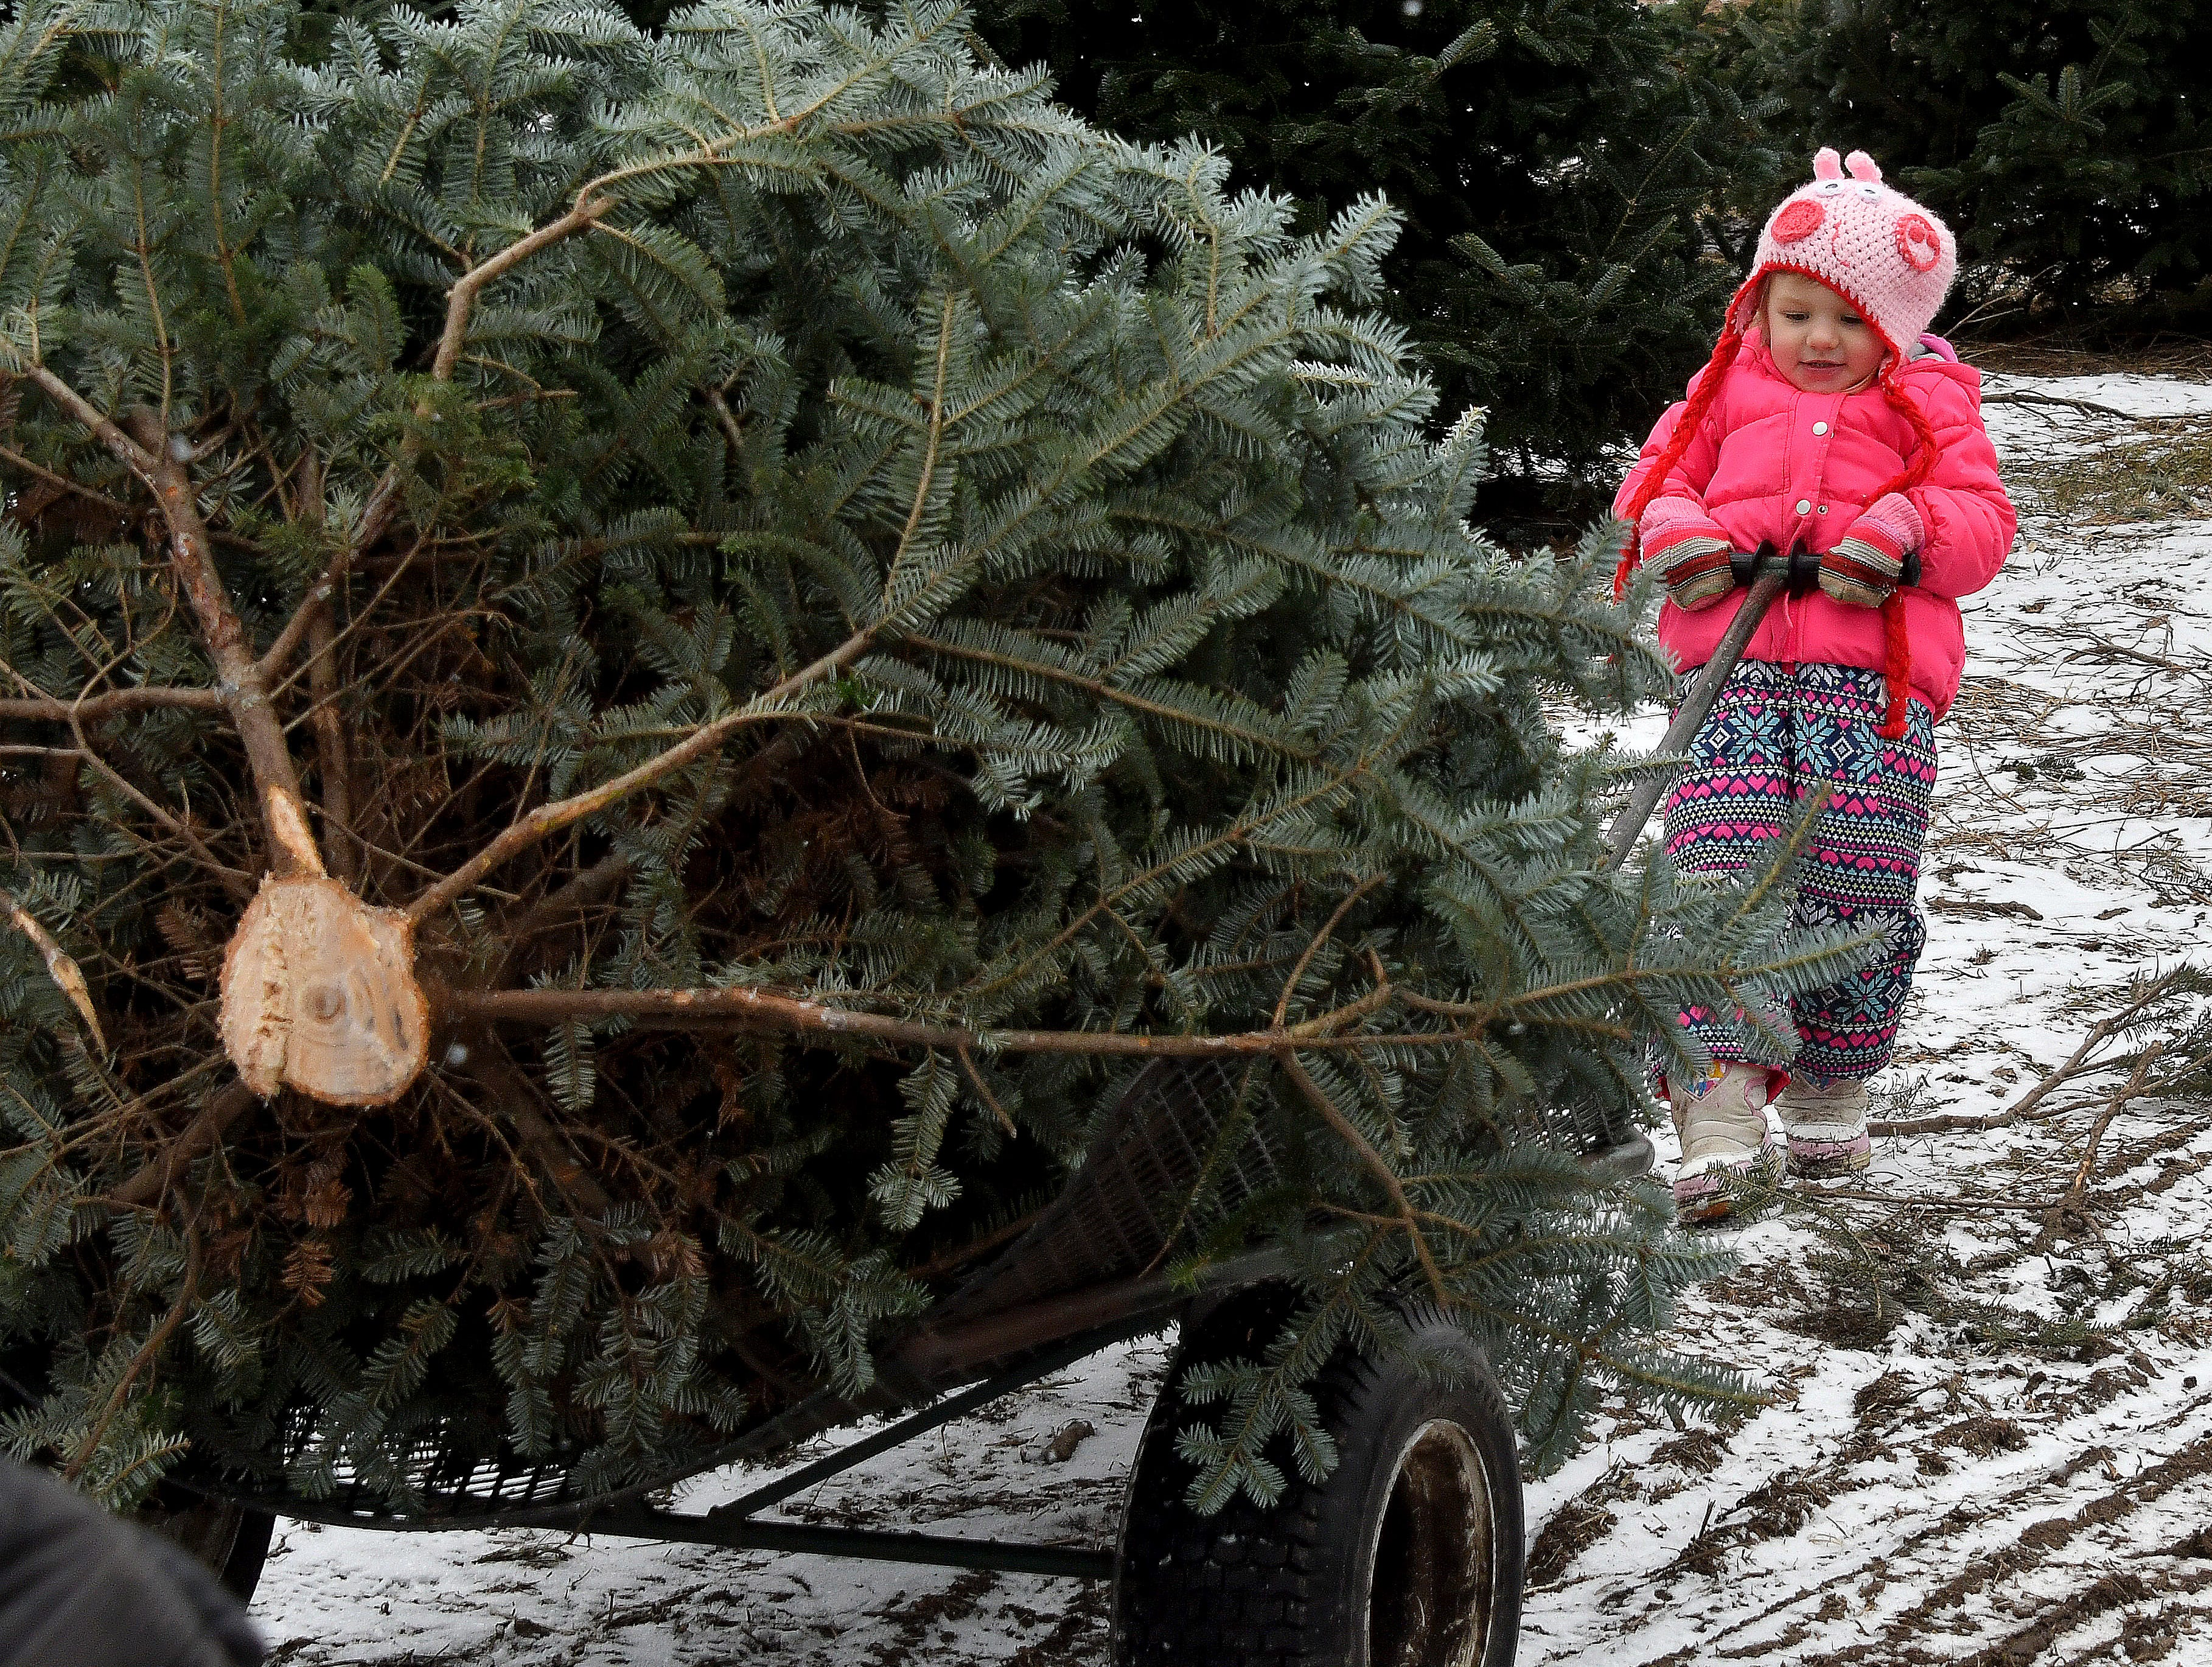 Dwarfed by the size of the family Christmas tree, four-year-old Laykin Schultz concentrates on pulling this prize out of the forest at the Kluck family Christmas tree farm and nursery near Saginaw.  The Klucks have been selling cut-your-own Christmas trees for four generations. They  run the second-largest operation in Michigan.